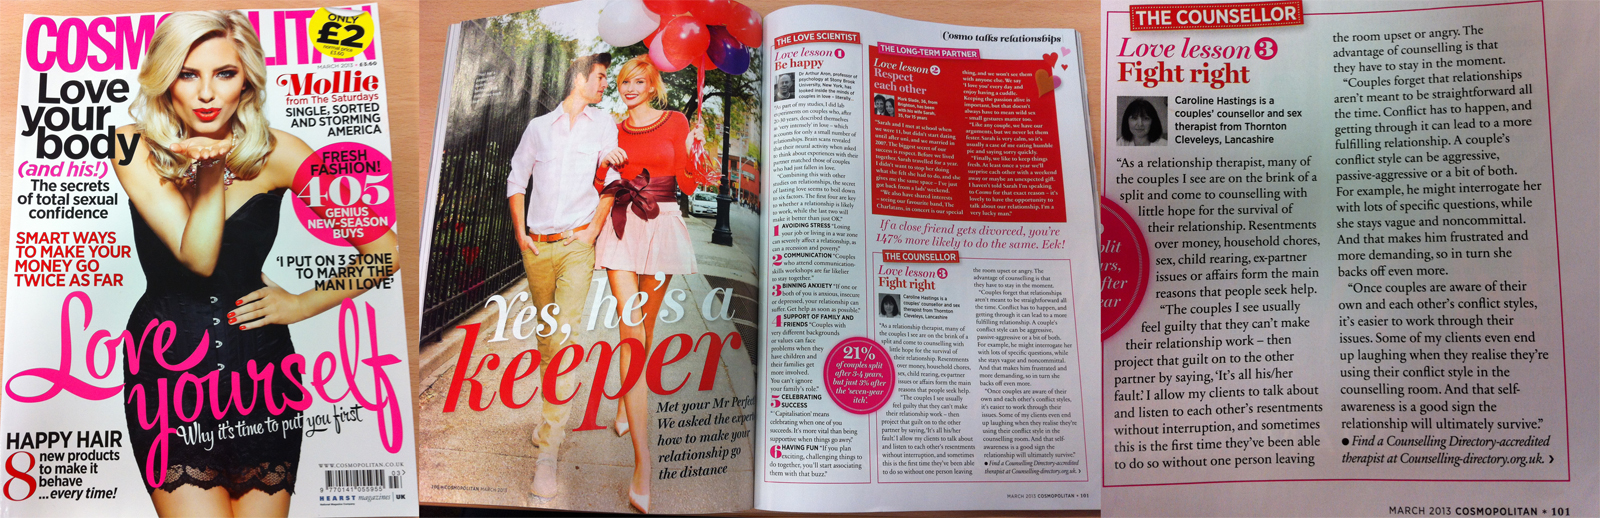 Counselling Directory featured in Cosmopolitan magazine